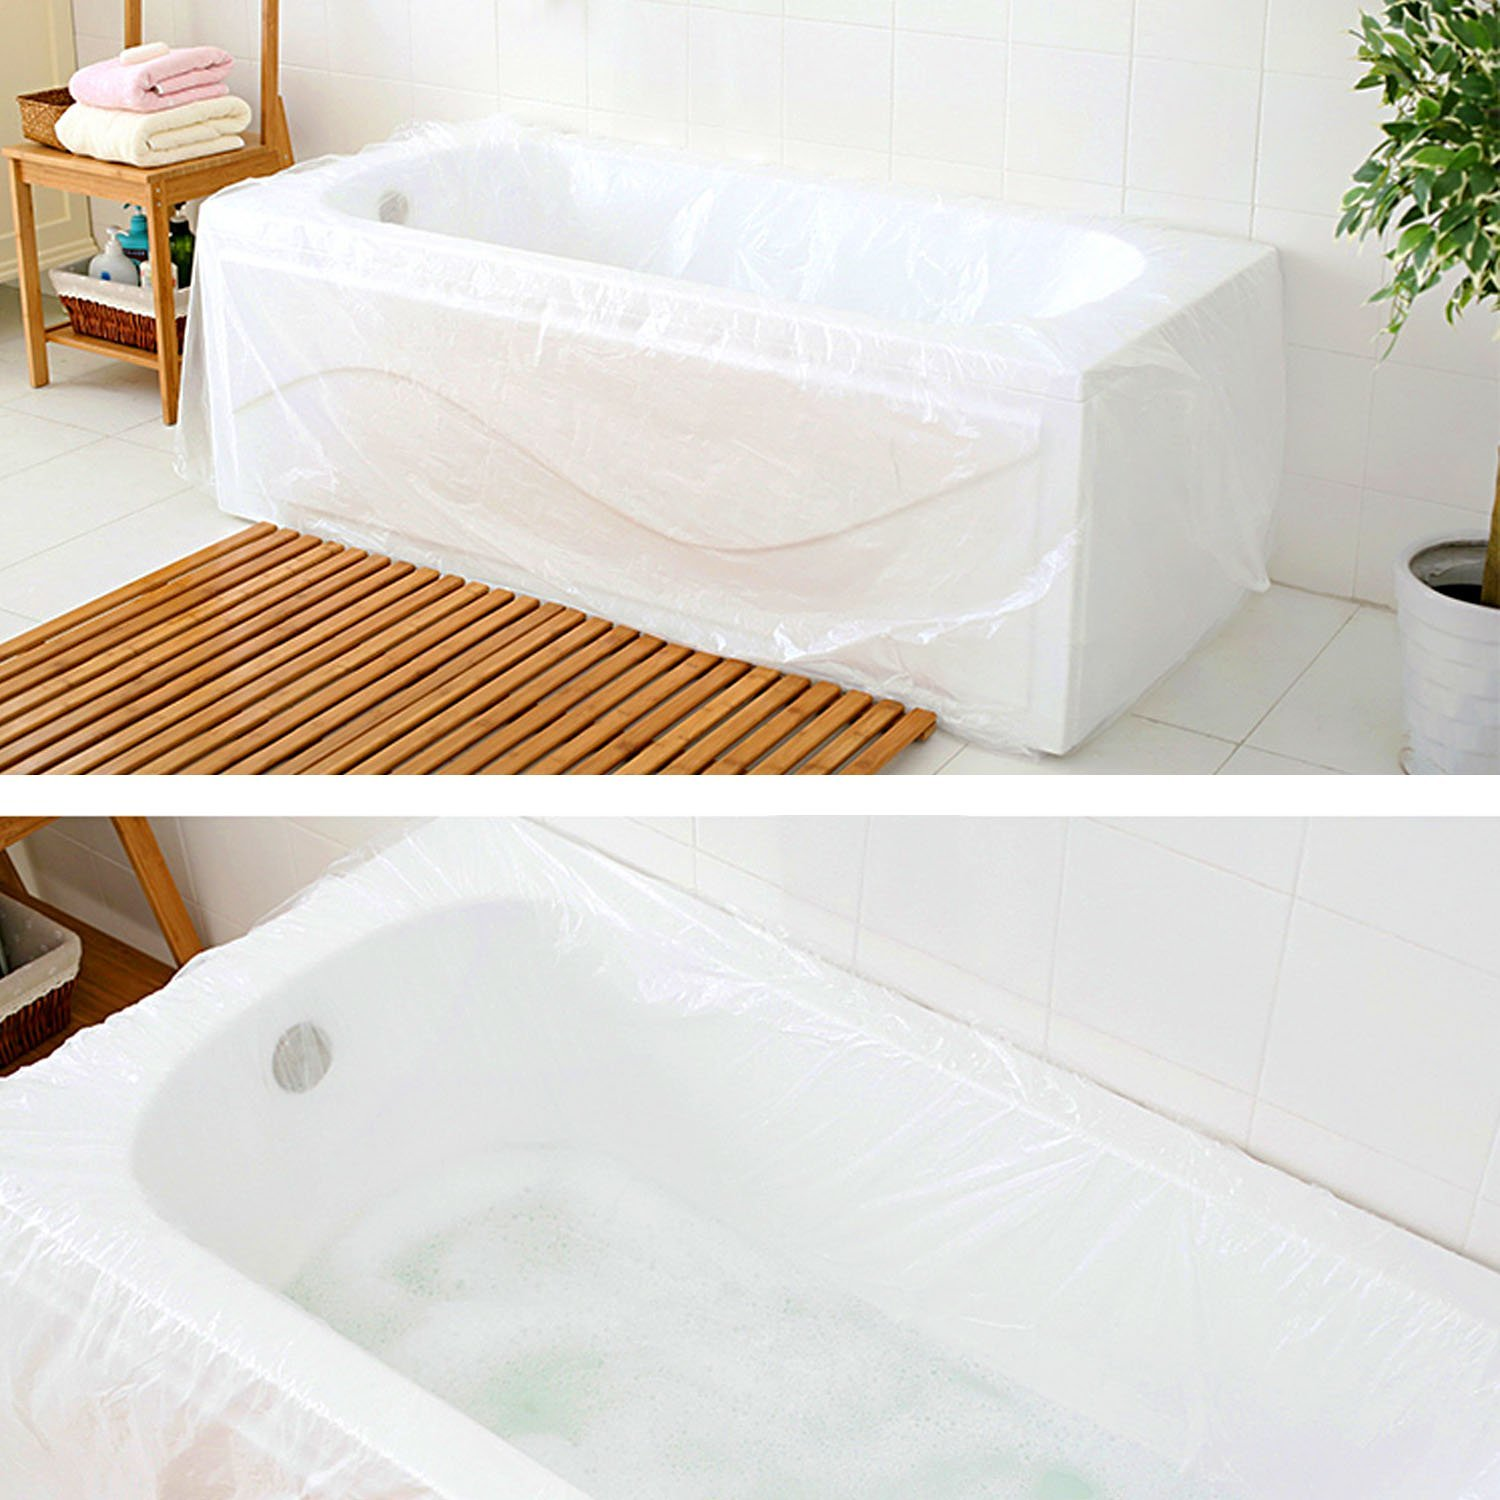 Amazon.com: WANPOOL Disposable Individual Bathtub Bag Film for ...